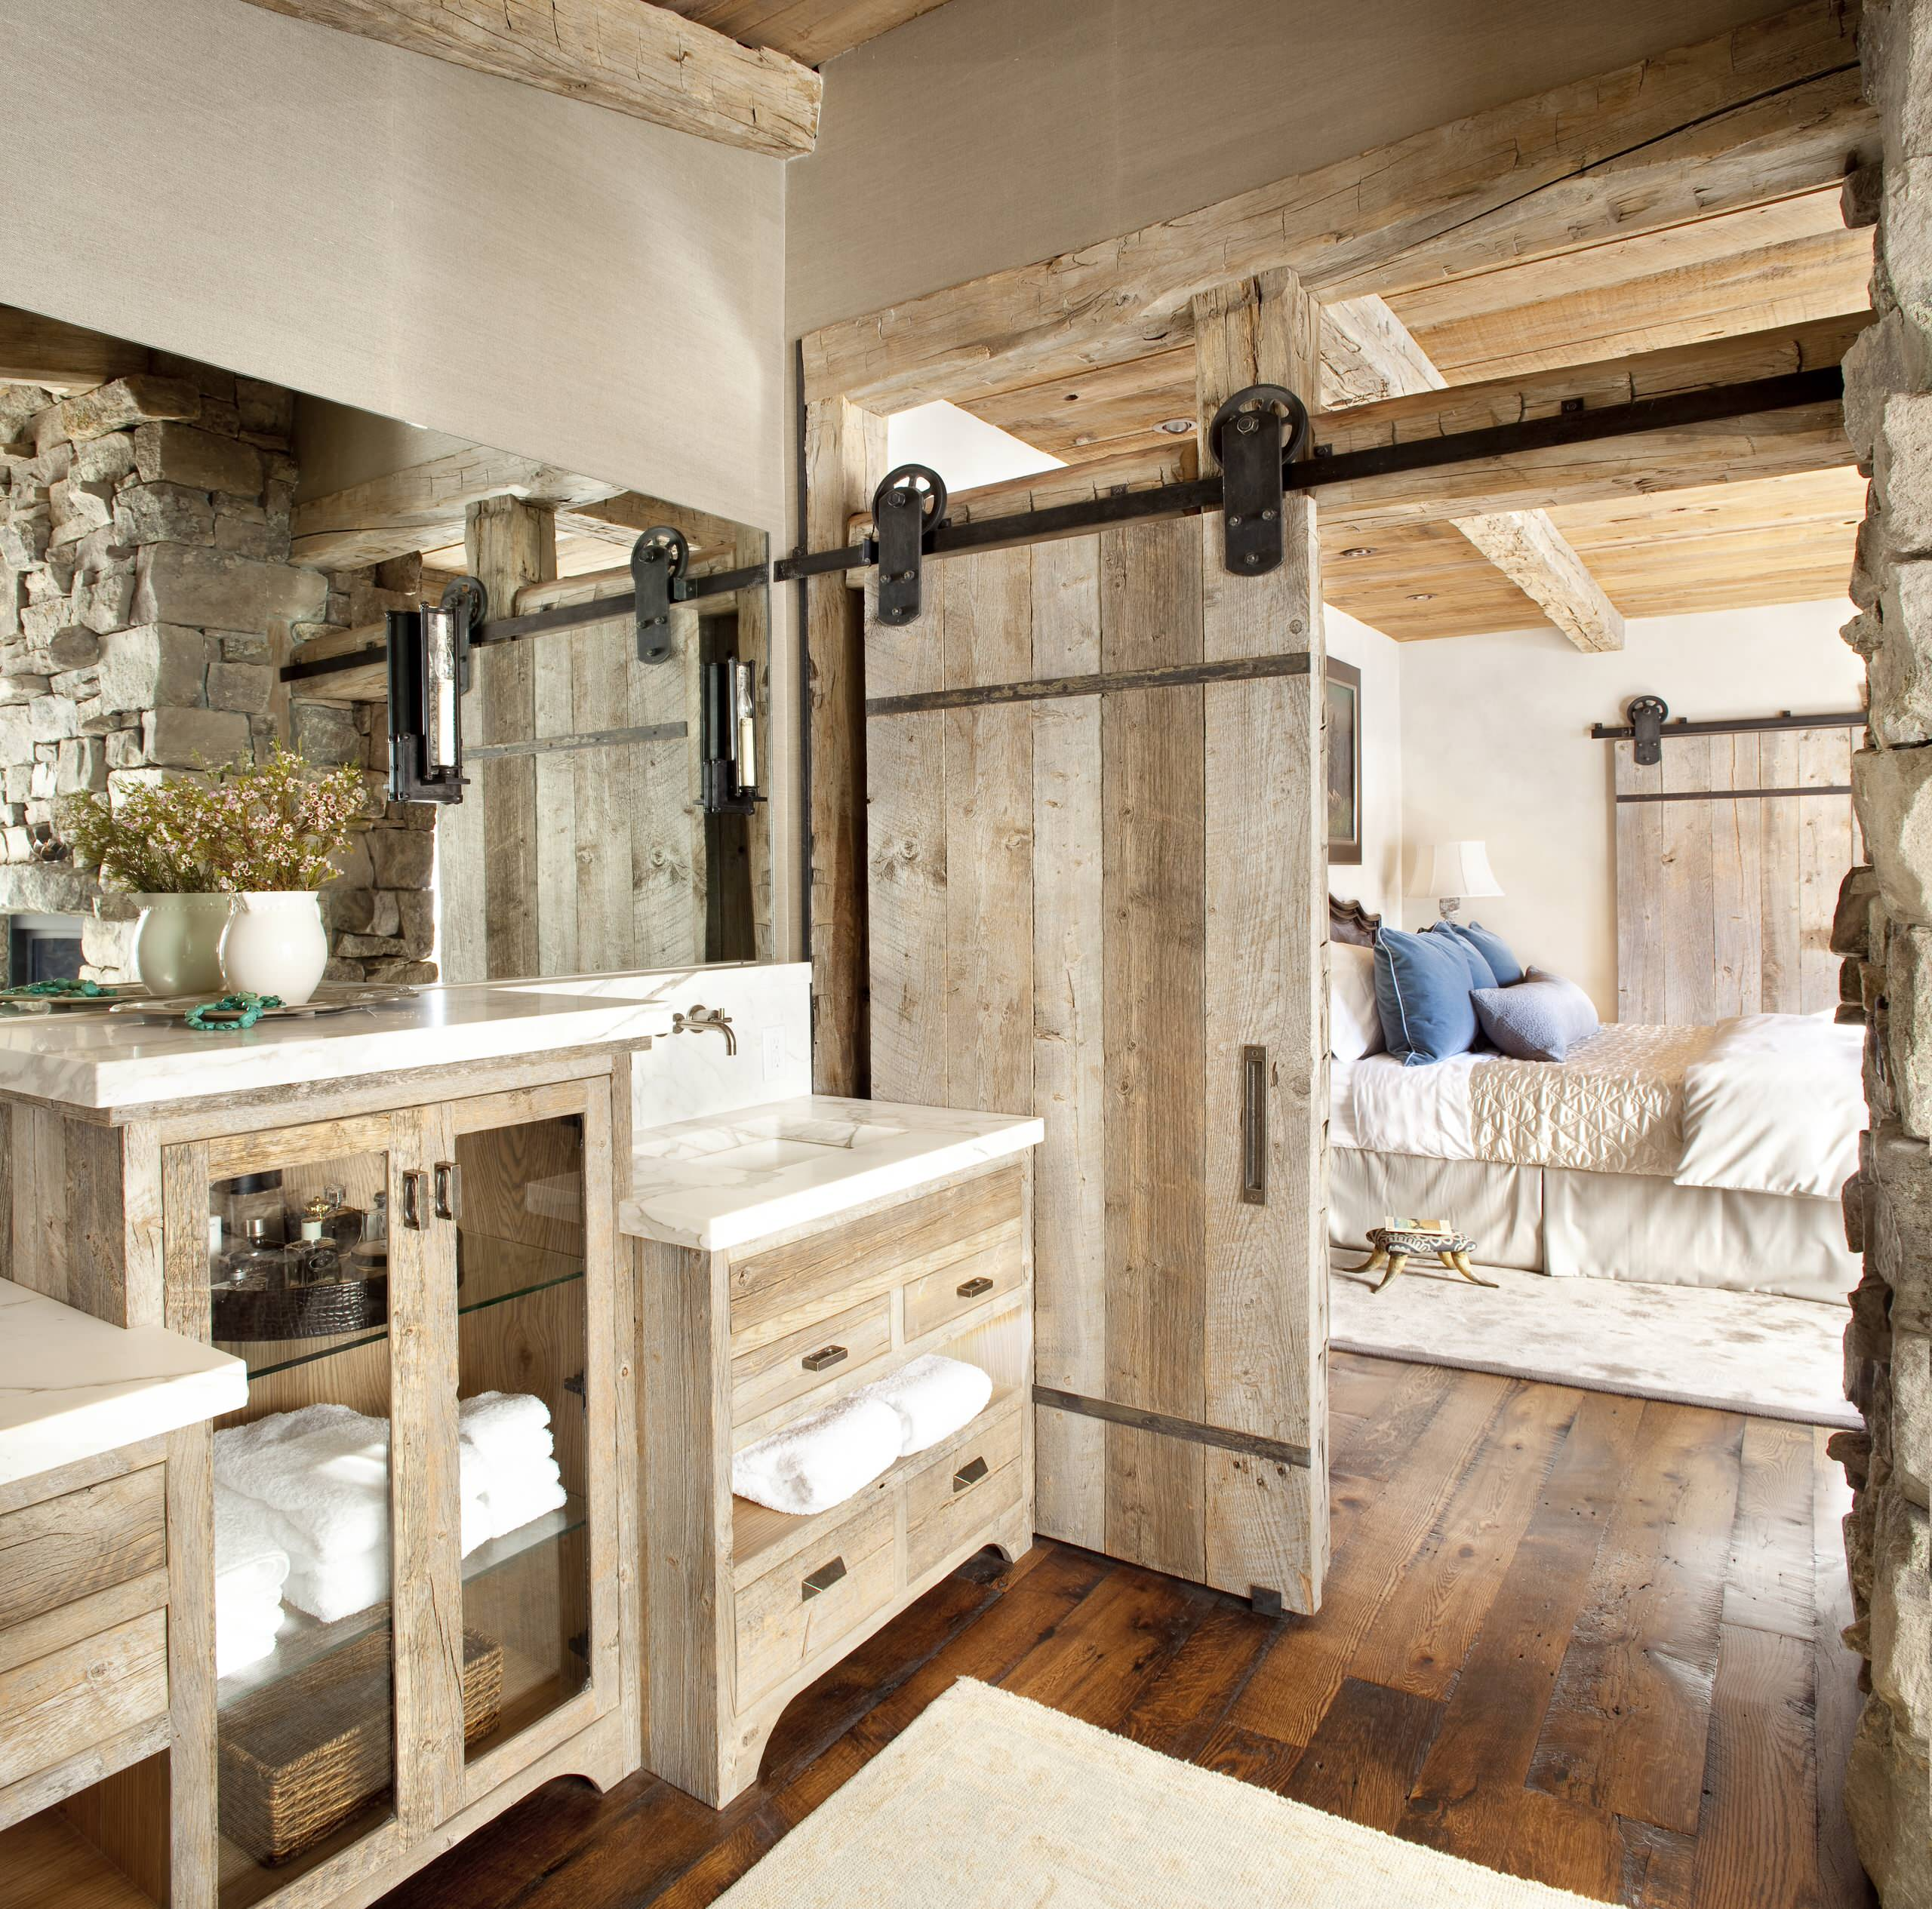 10 Beautiful Rustic Bathroom Design Ideas & Pictures  Houzz